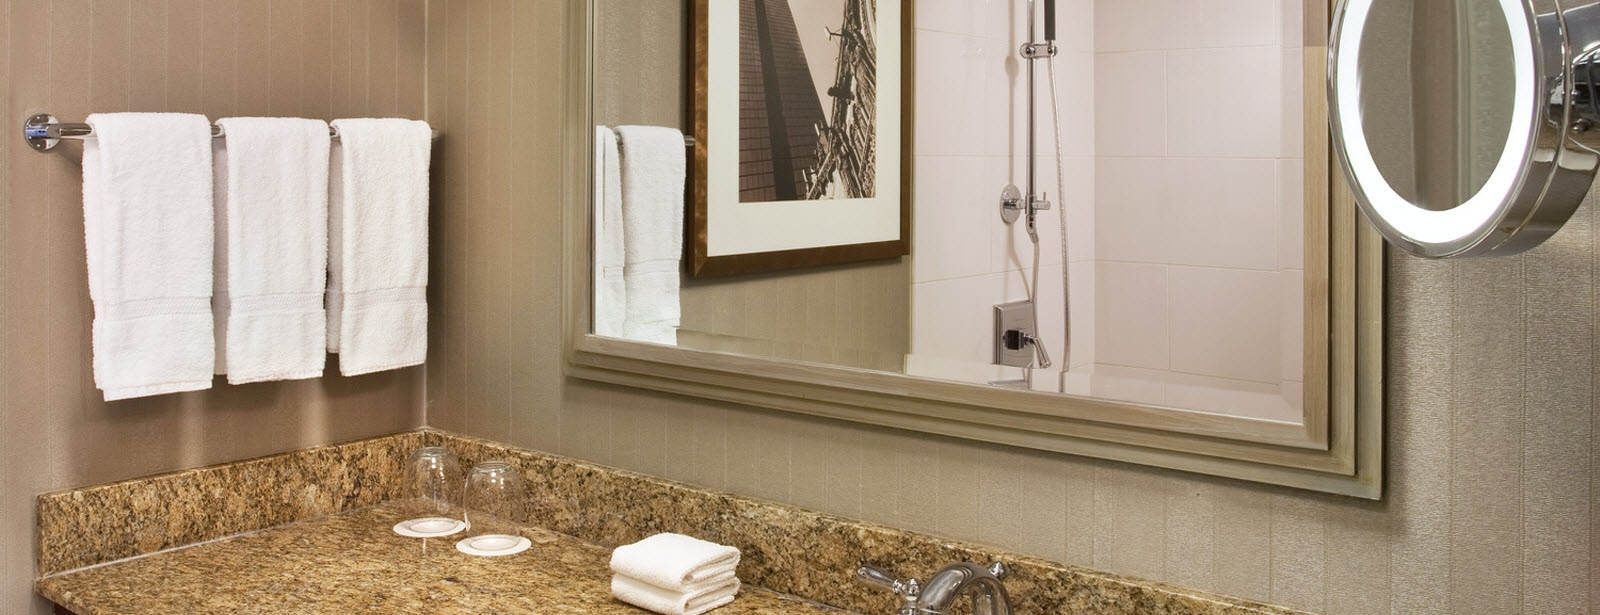 The Westin Copley Place Boston executive suite bathroom